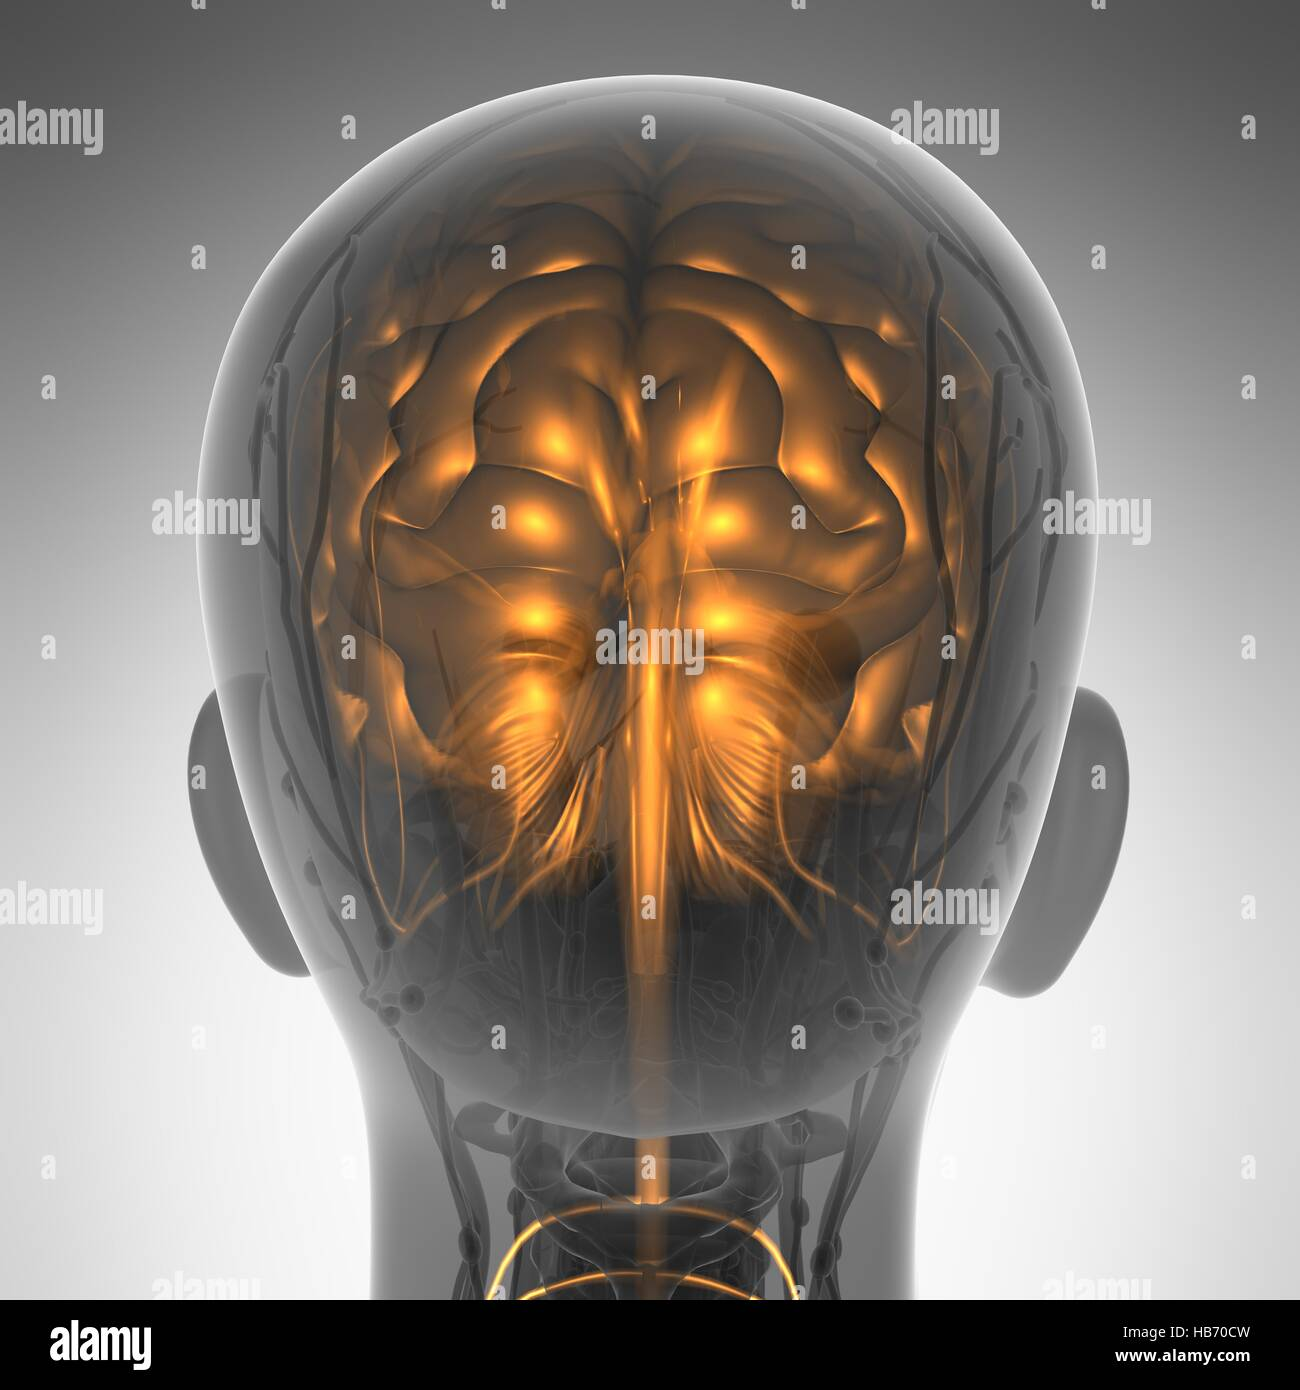 science anatomy of human brain in x-ray - Stock Image